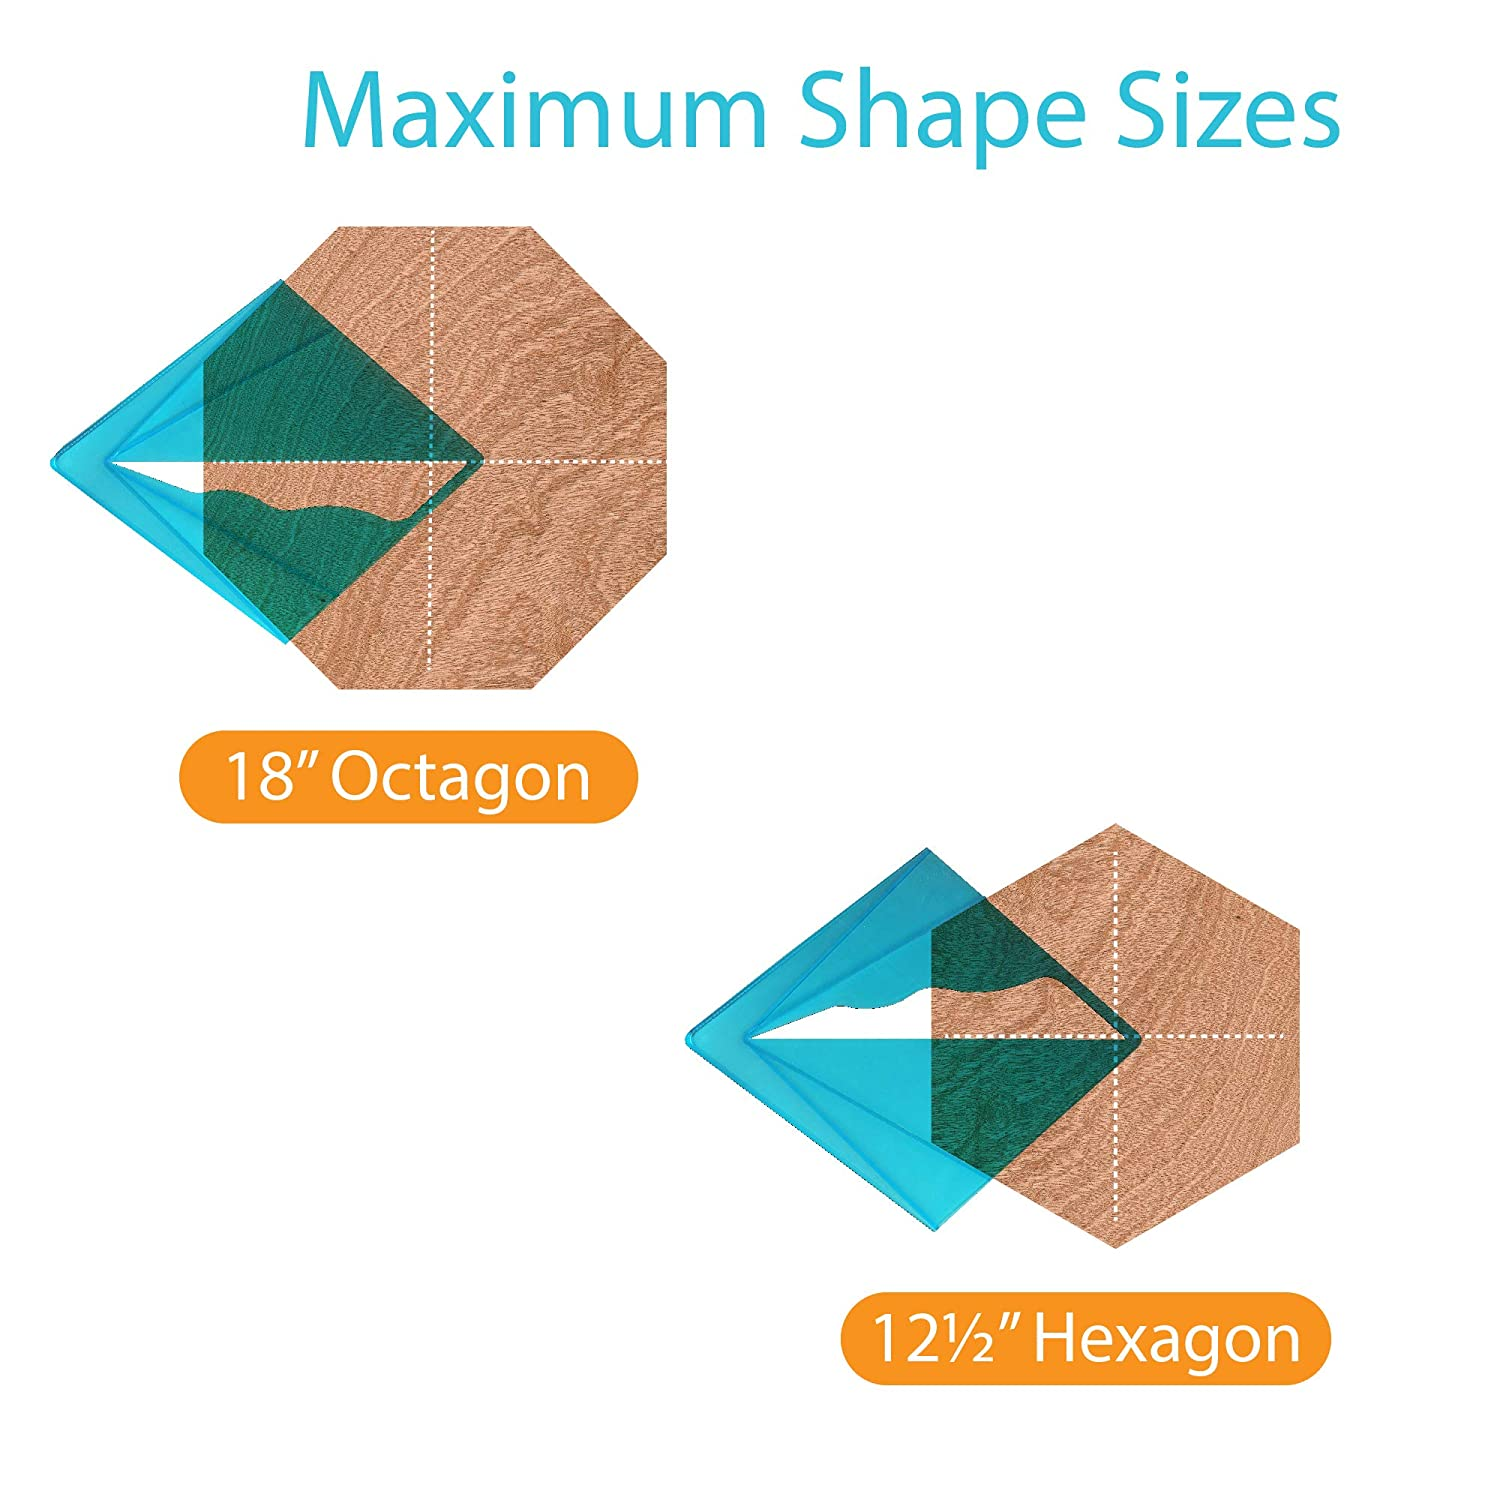 Carpenters or Around the Home Octagon and Hexagon Shaped Material up To 18 Inches Ideal For Woodworkers Blue Transparent Center Finder and Yellow Transparent Center Finder for Square Round